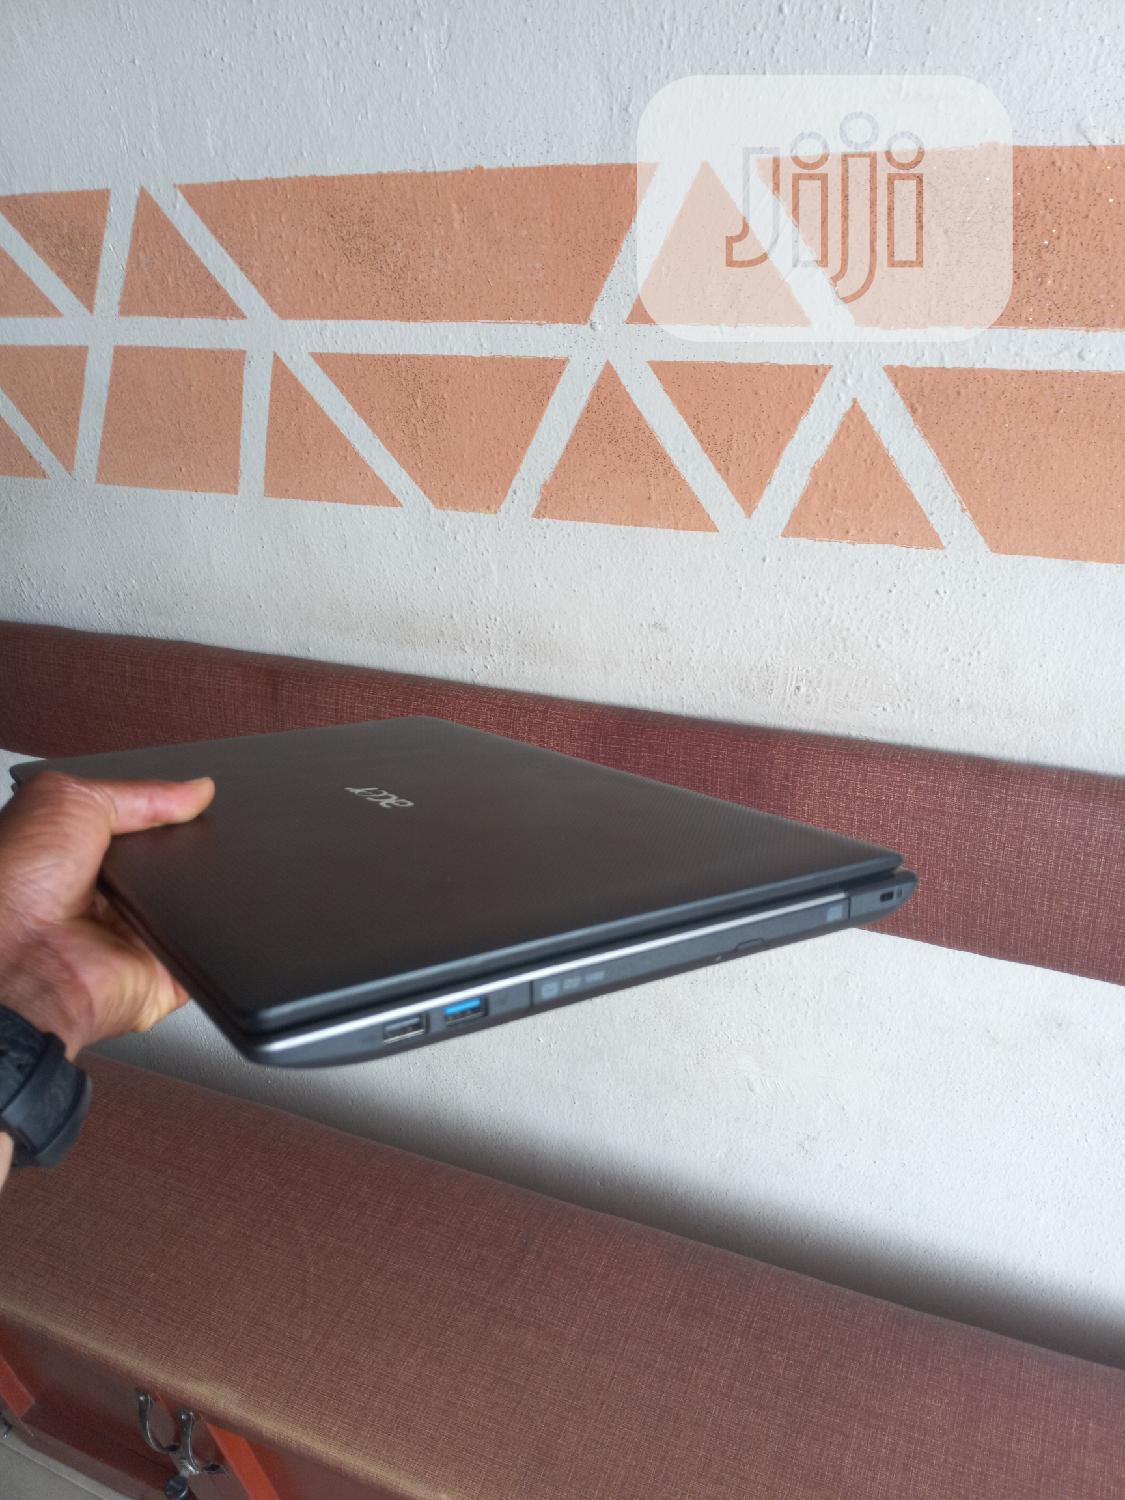 Archive: Laptop Acer Aspire 5750 4GB Intel Core I5 HDD 320GB